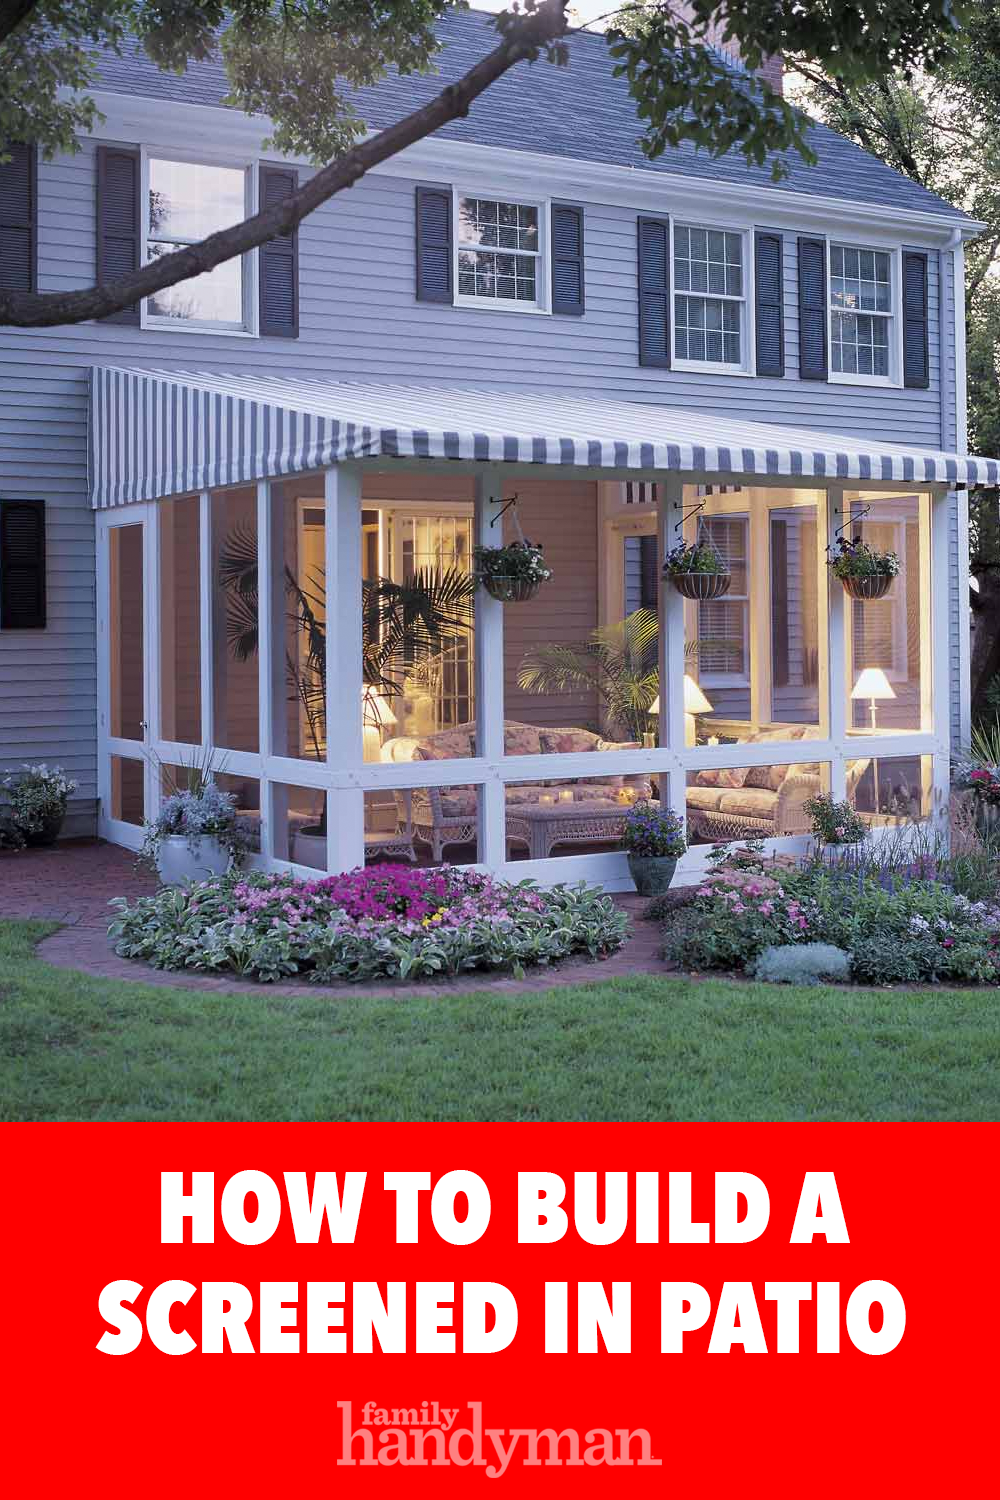 How to Build a Screened In Patio Screened in patio